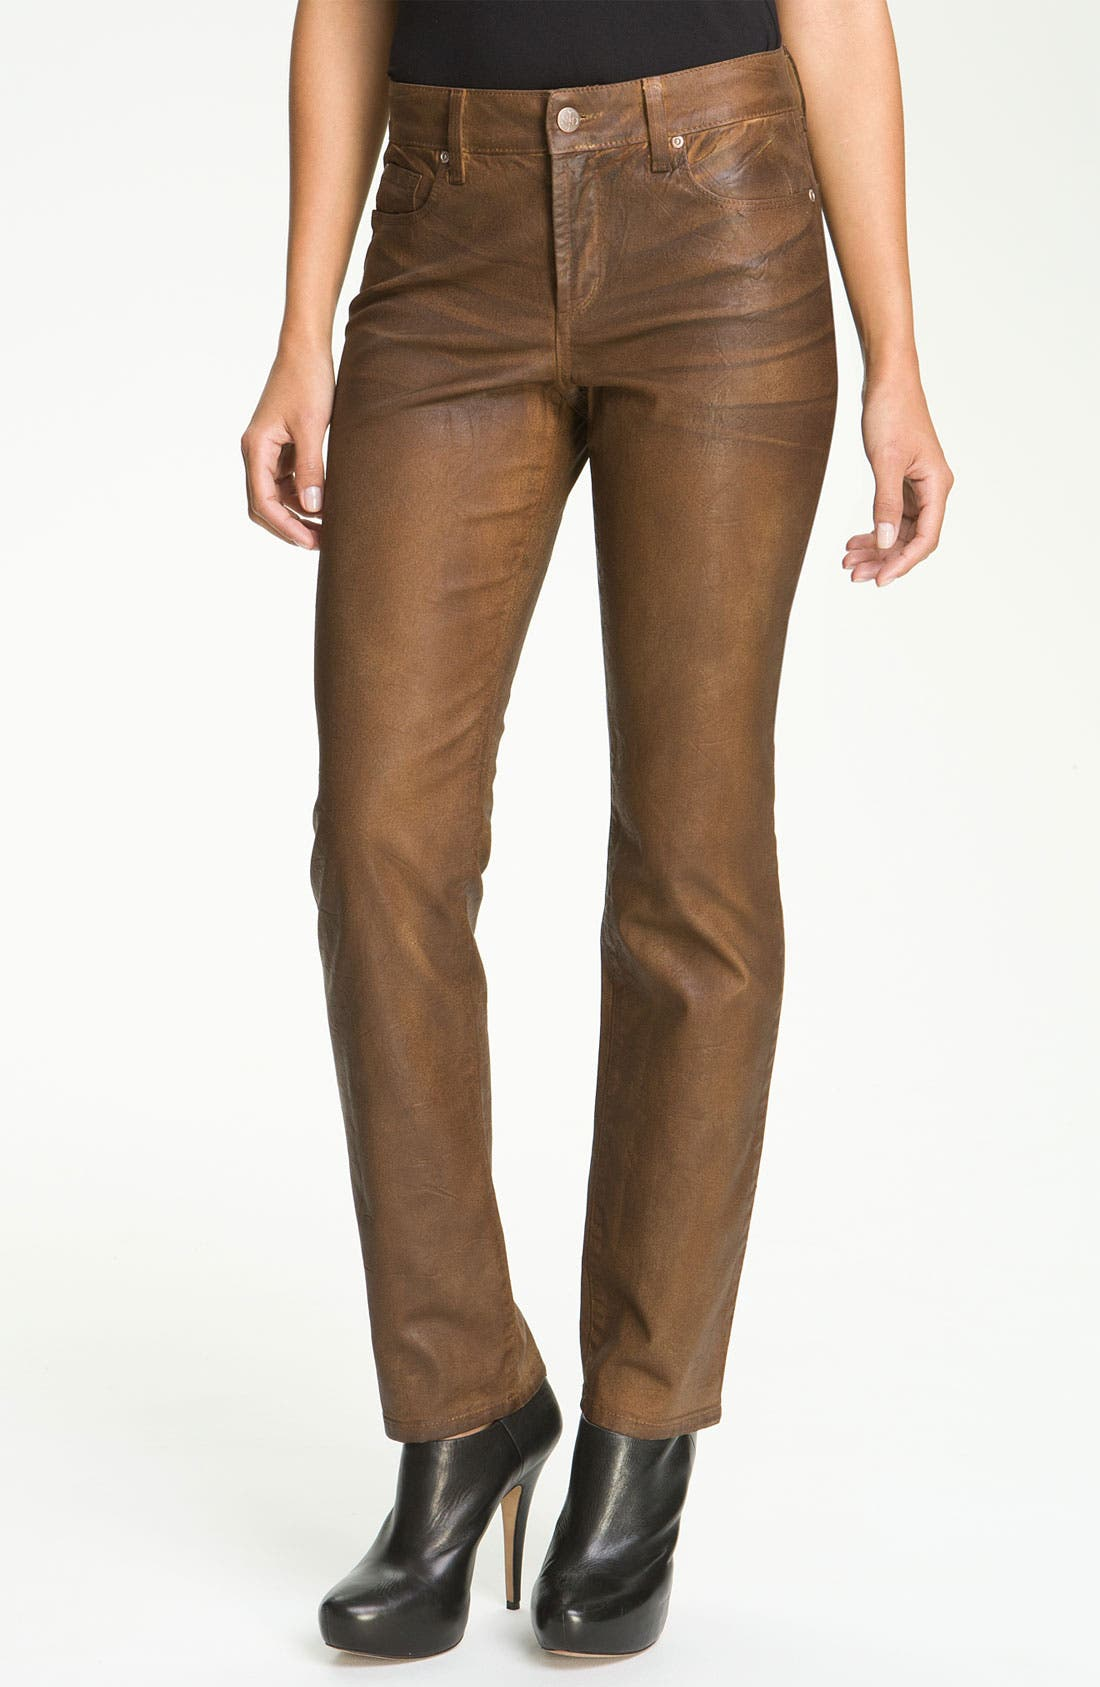 Alternate Image 1 Selected - NYDJ 'Sheri' Coated Skinny Jeans